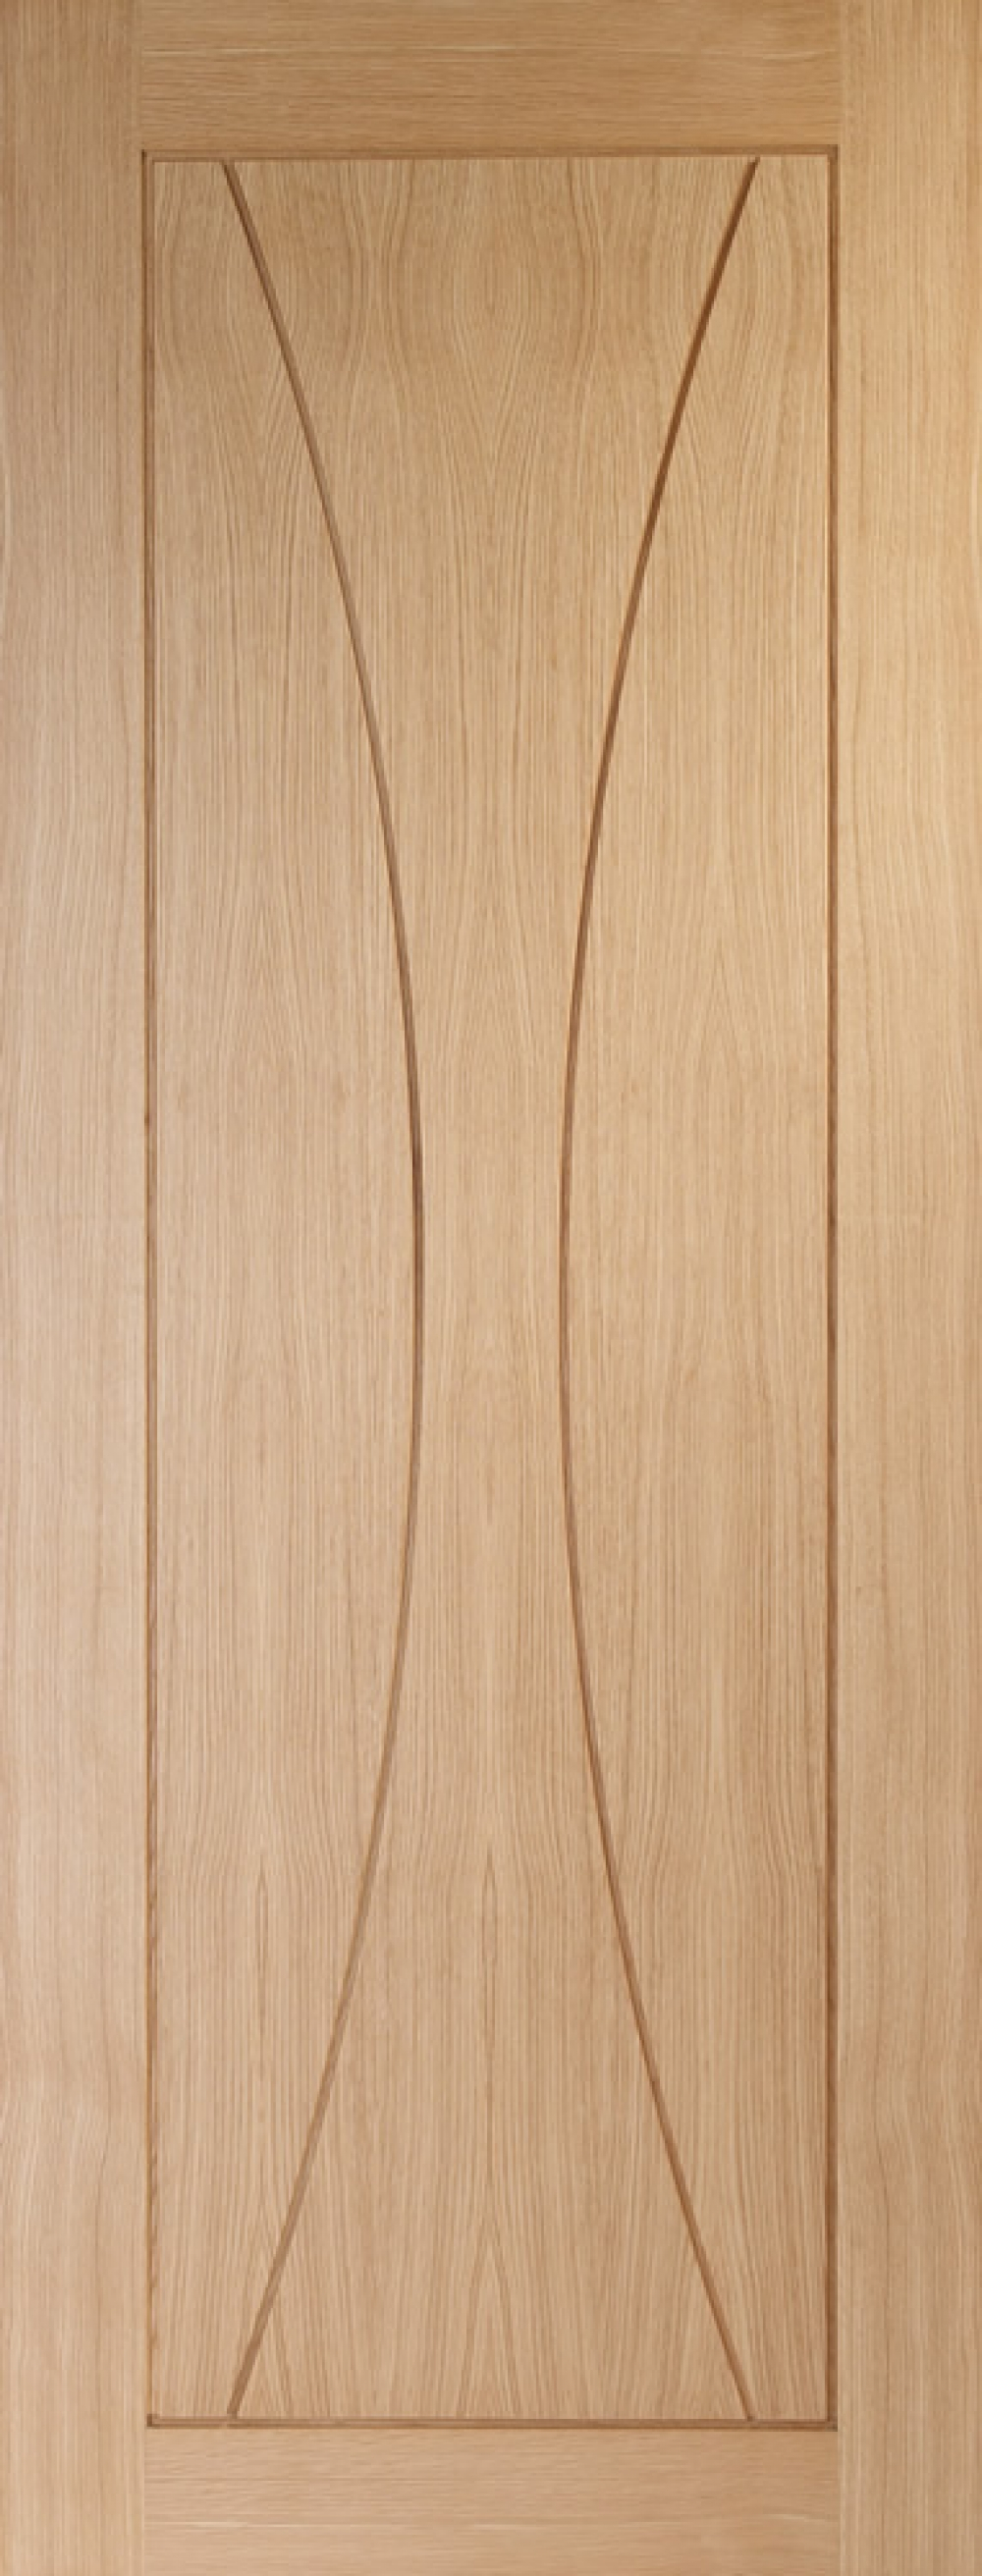 Verona Oak Door - PREFINISHED